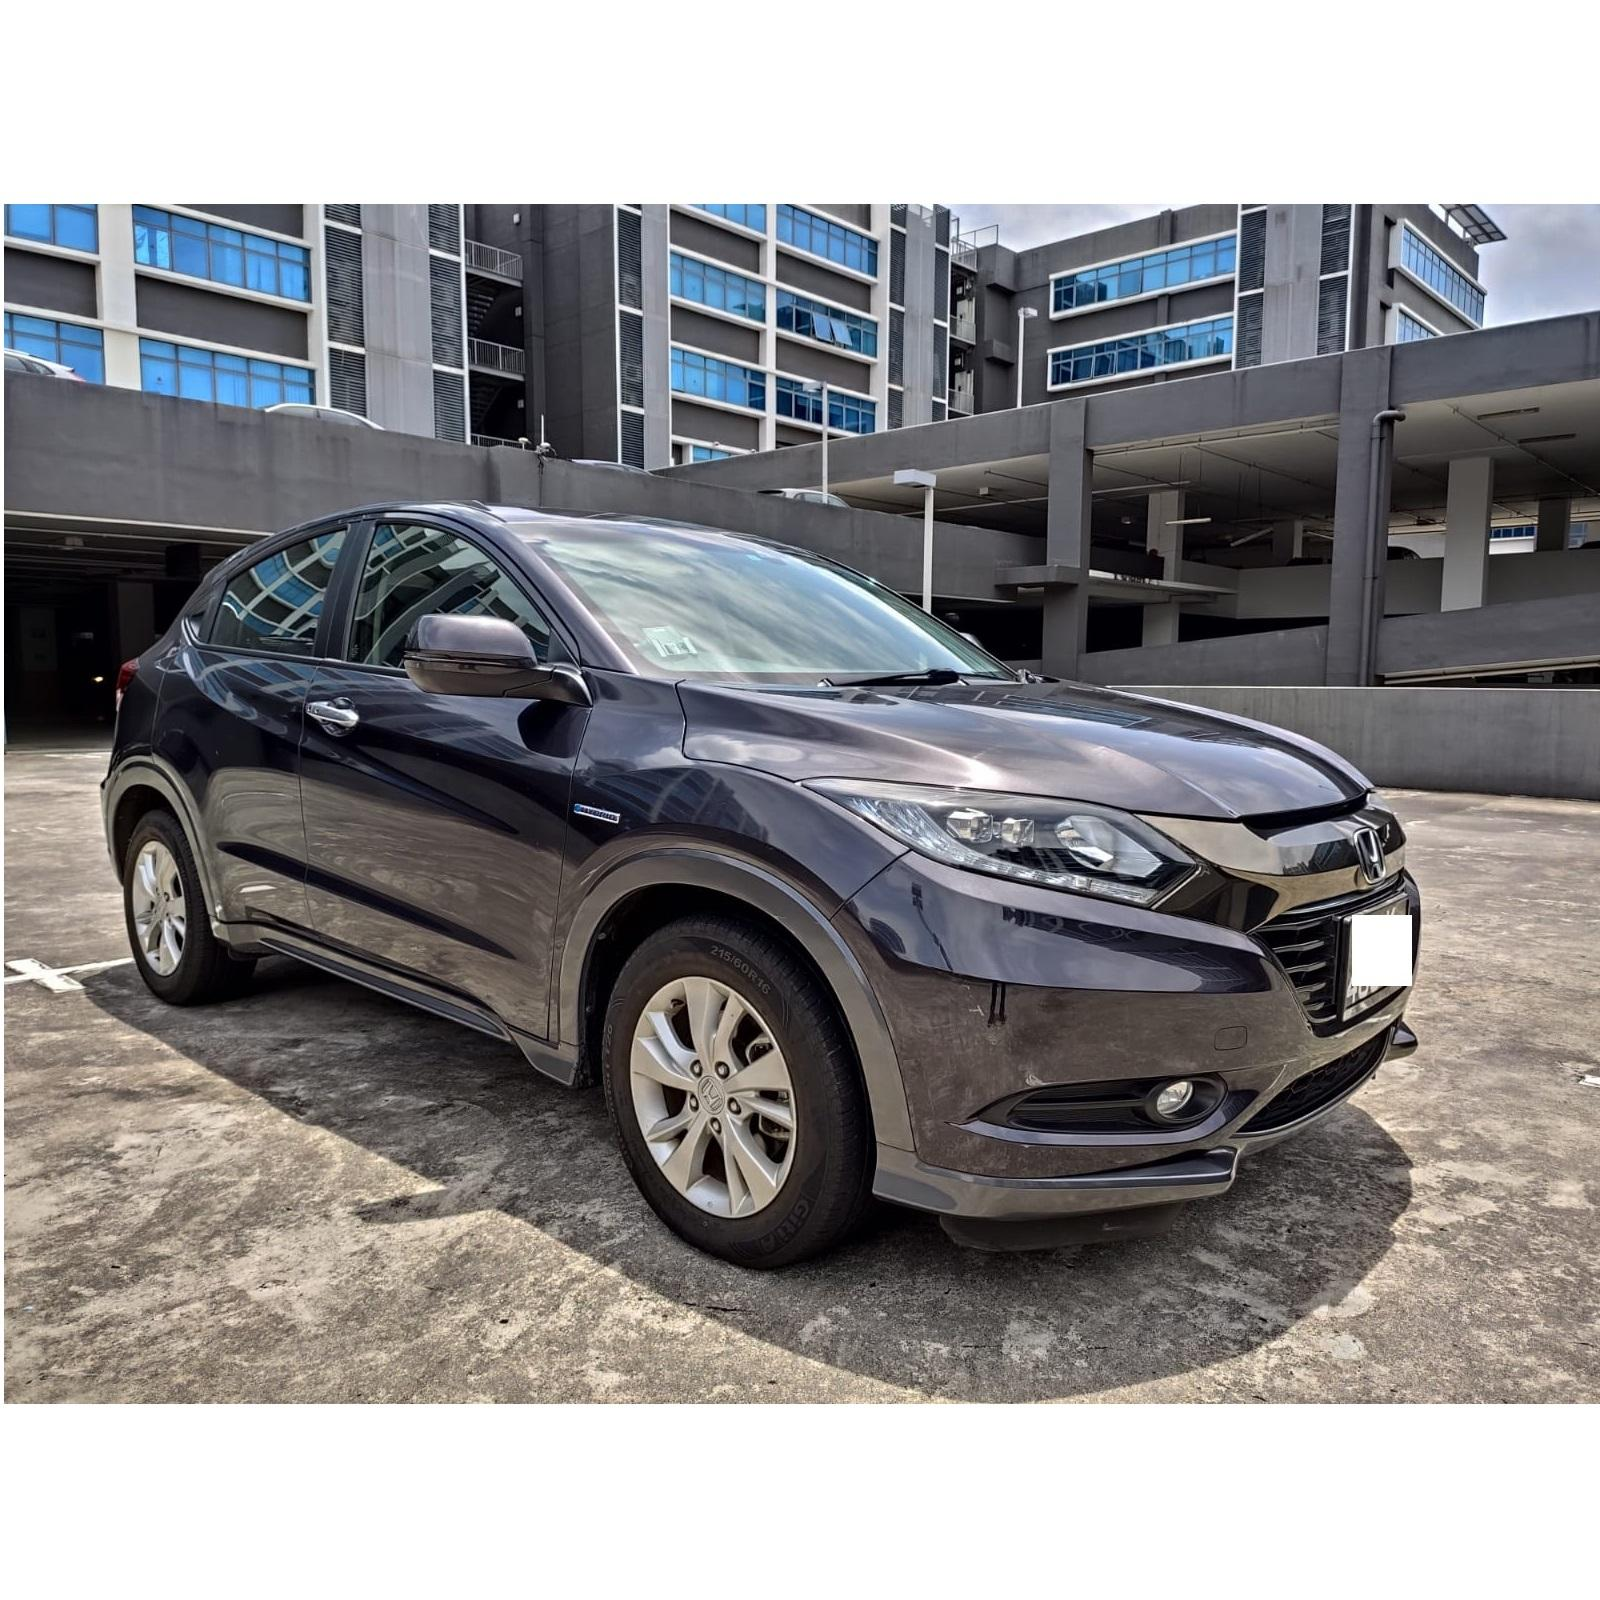 Automatic Hybrid Used Motor Car SUV Good Price For Sale Japan HONDA VEZEL HYBRID 1.5X A